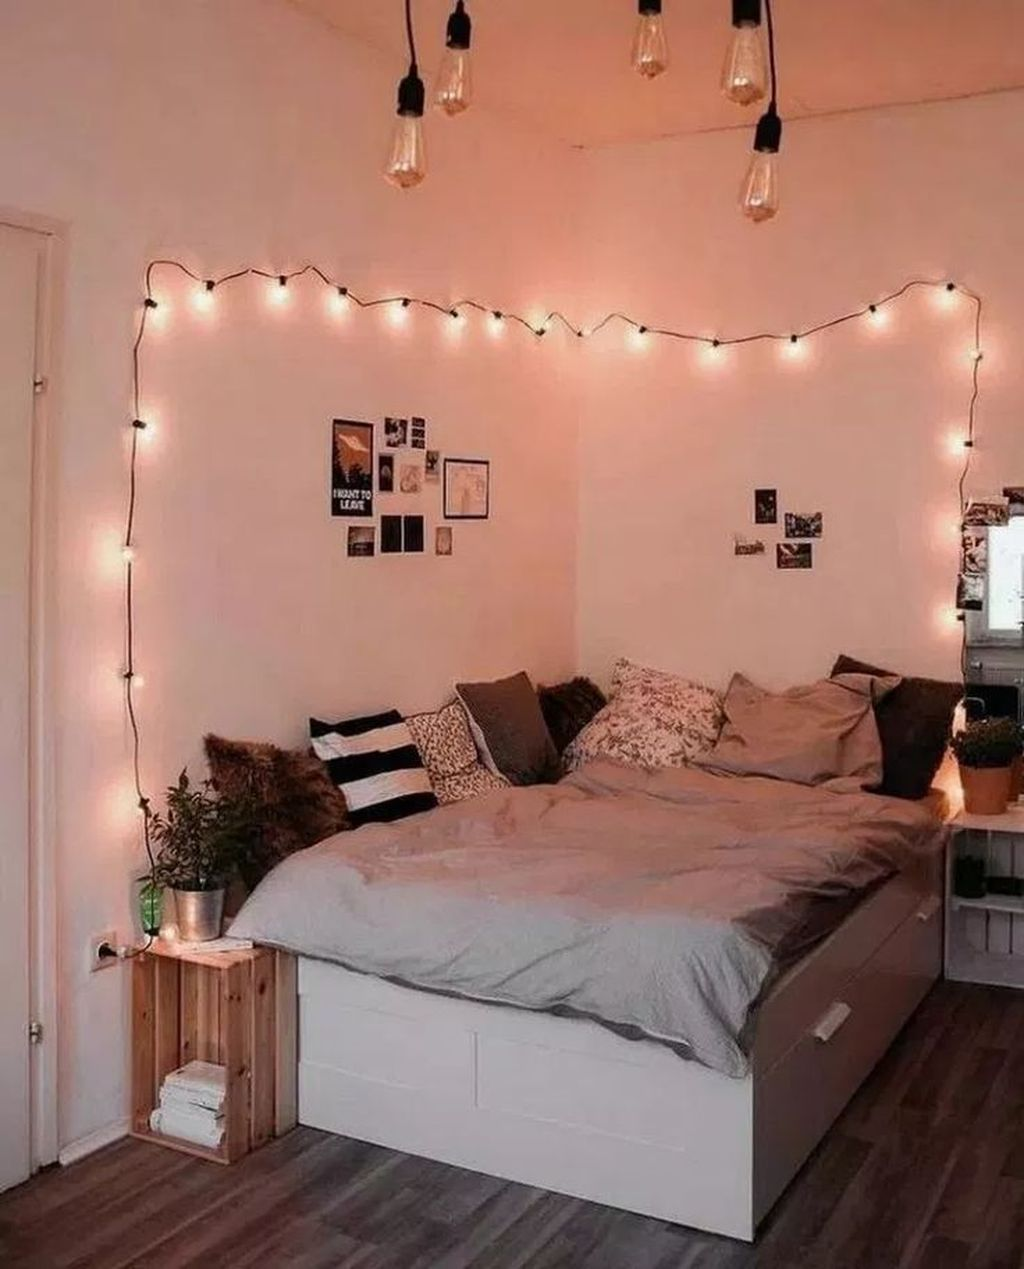 33 Admirable Small Bedroom Decor Ideas You Never Seen Before - HOMYHOMEE